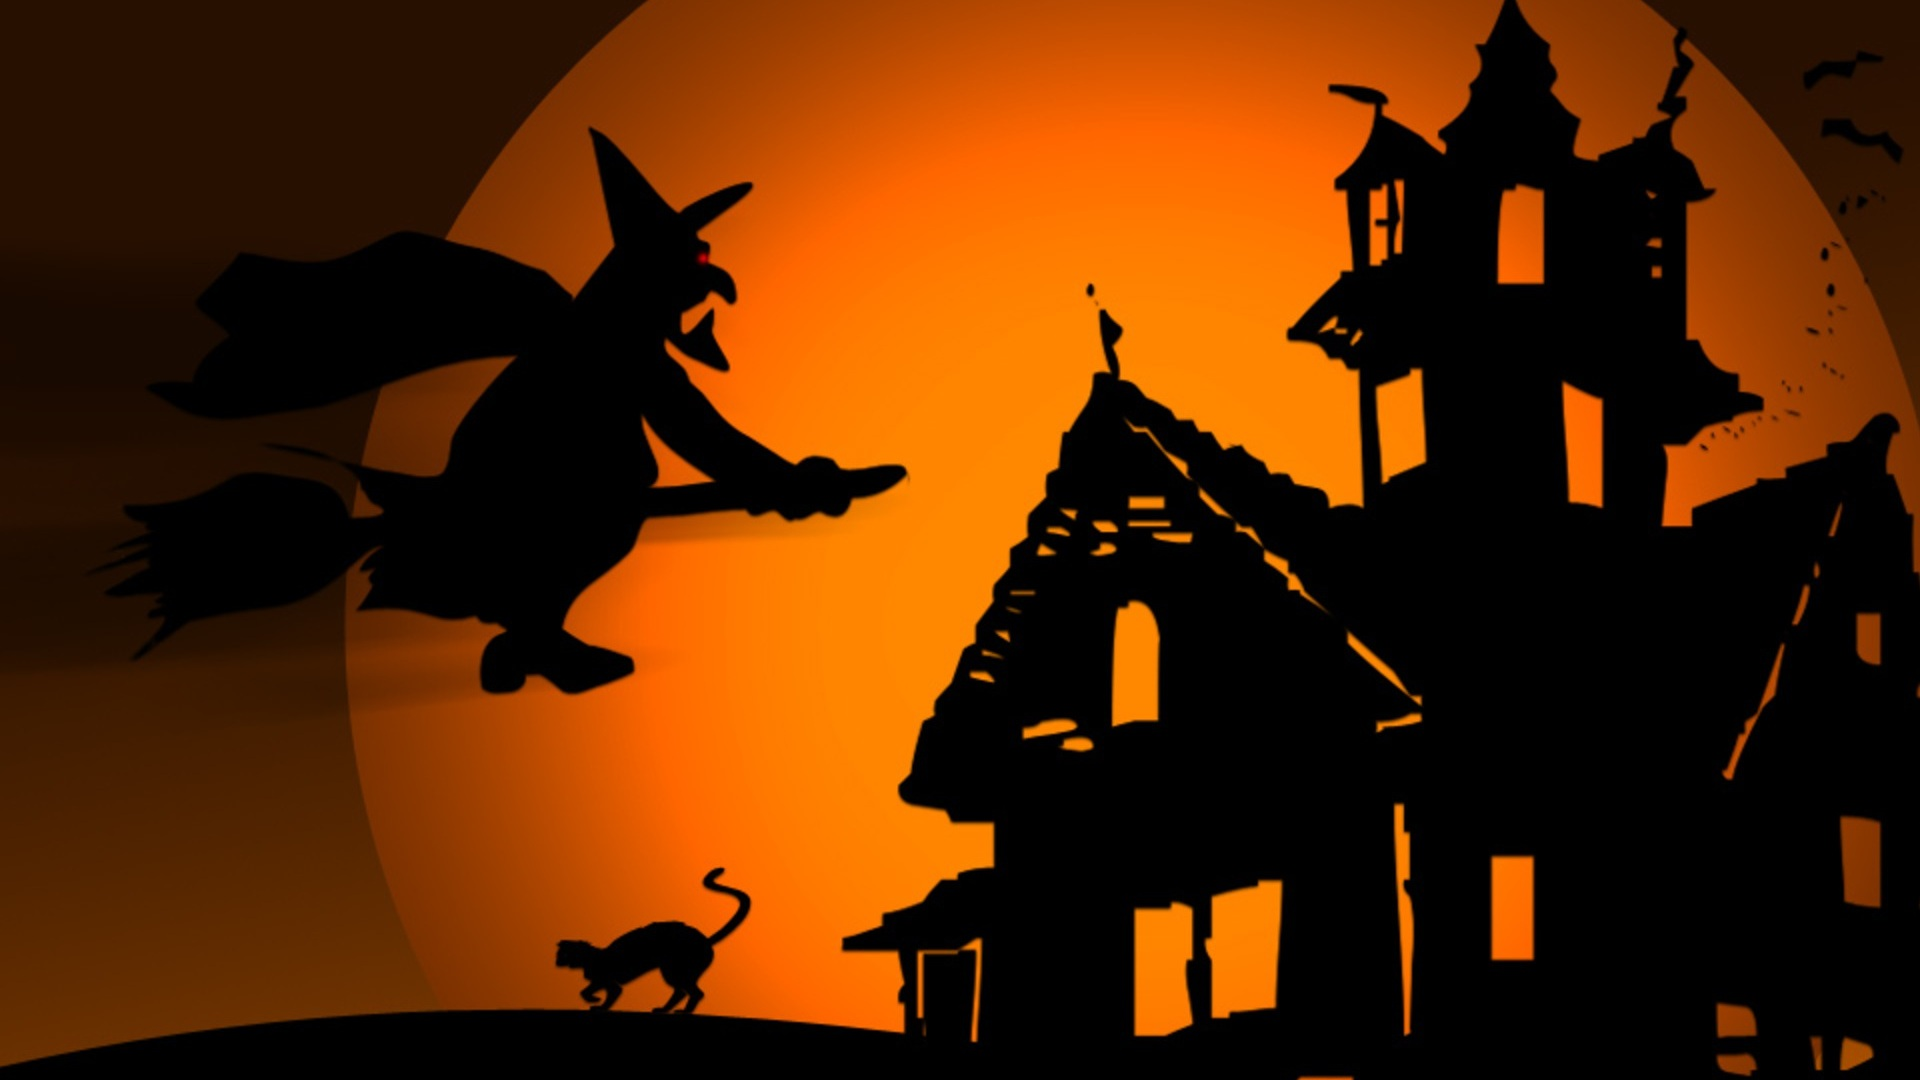 Free Wallpaper Halloween Pictures - WallpaperSafari